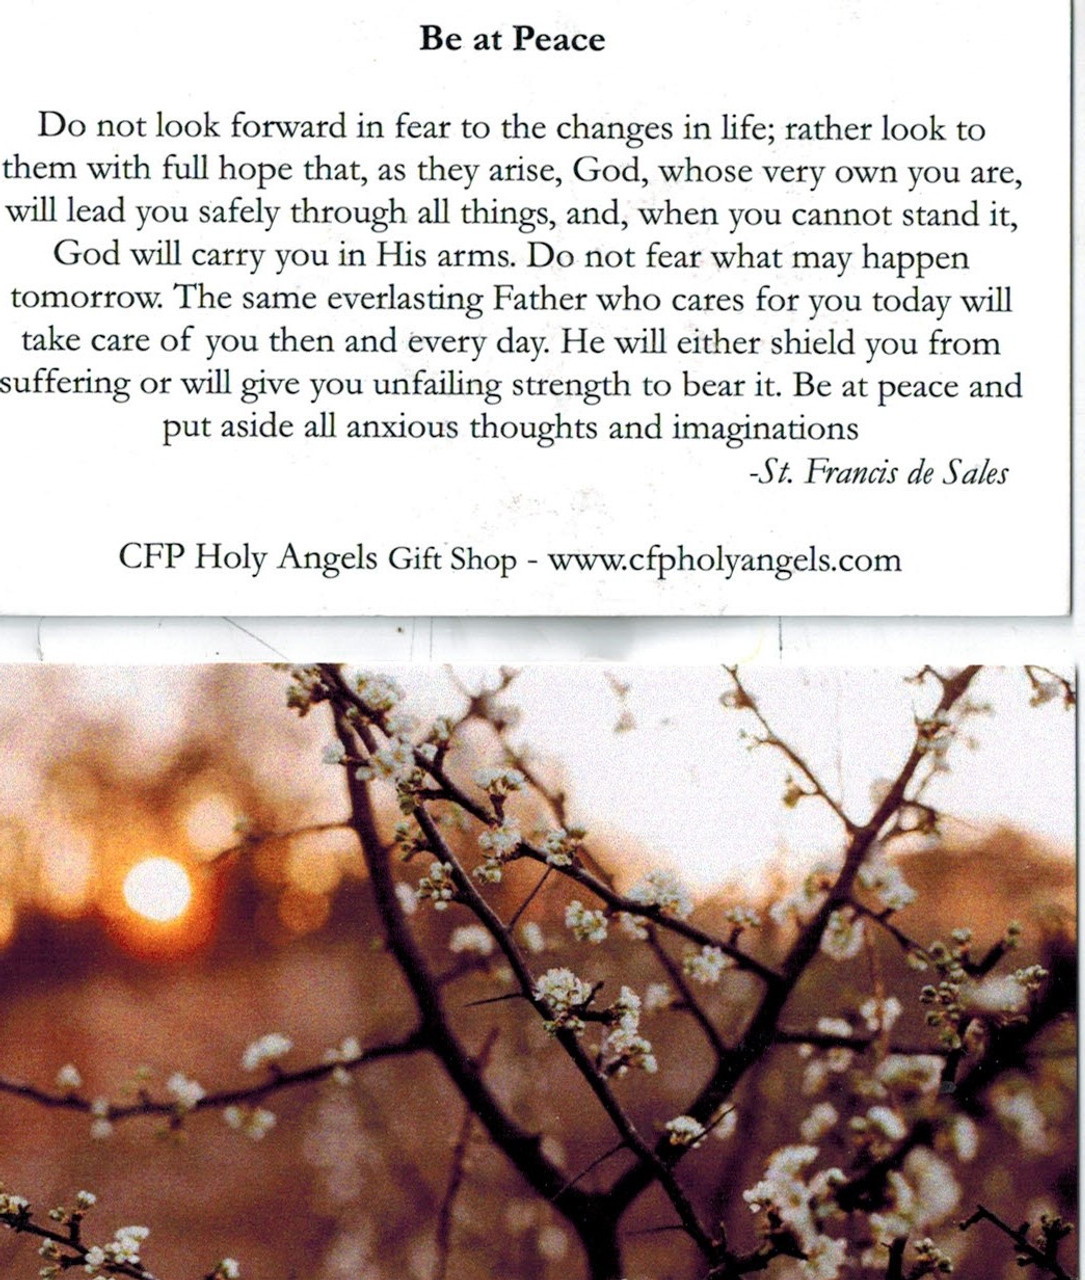 Be at Peace Prayer by St. Francis de Sales